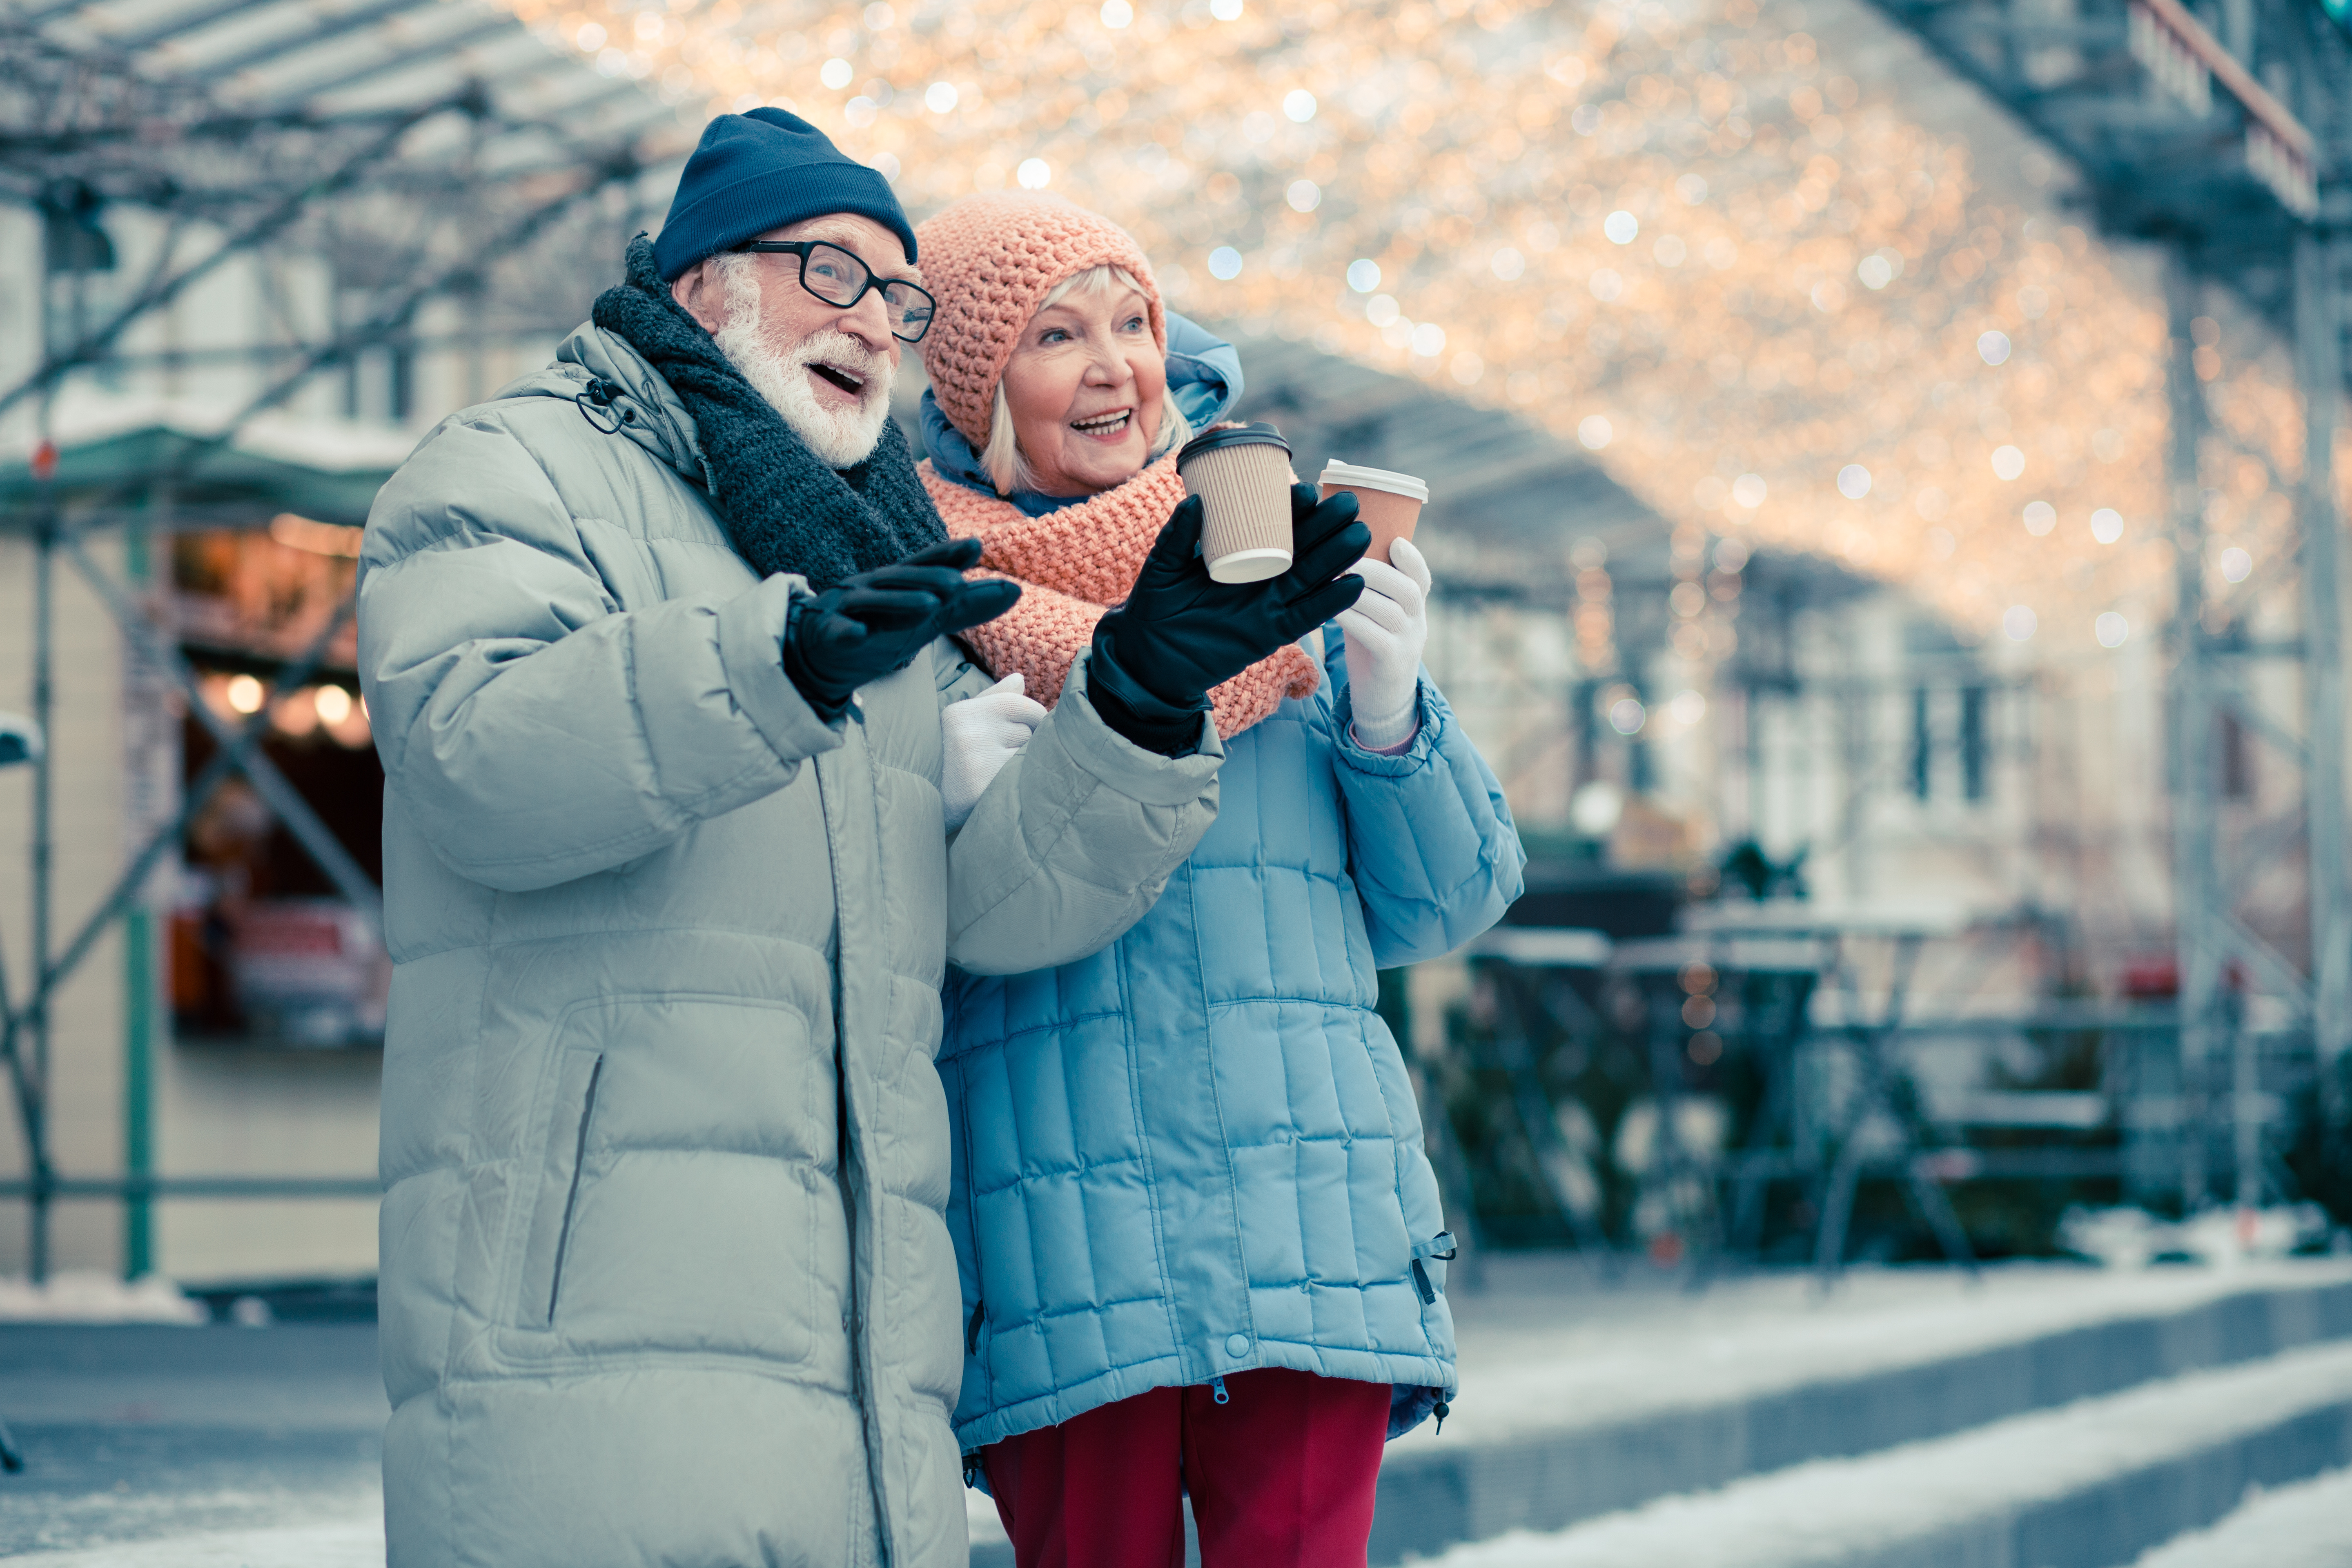 Elderly Couple in Winter Clothes